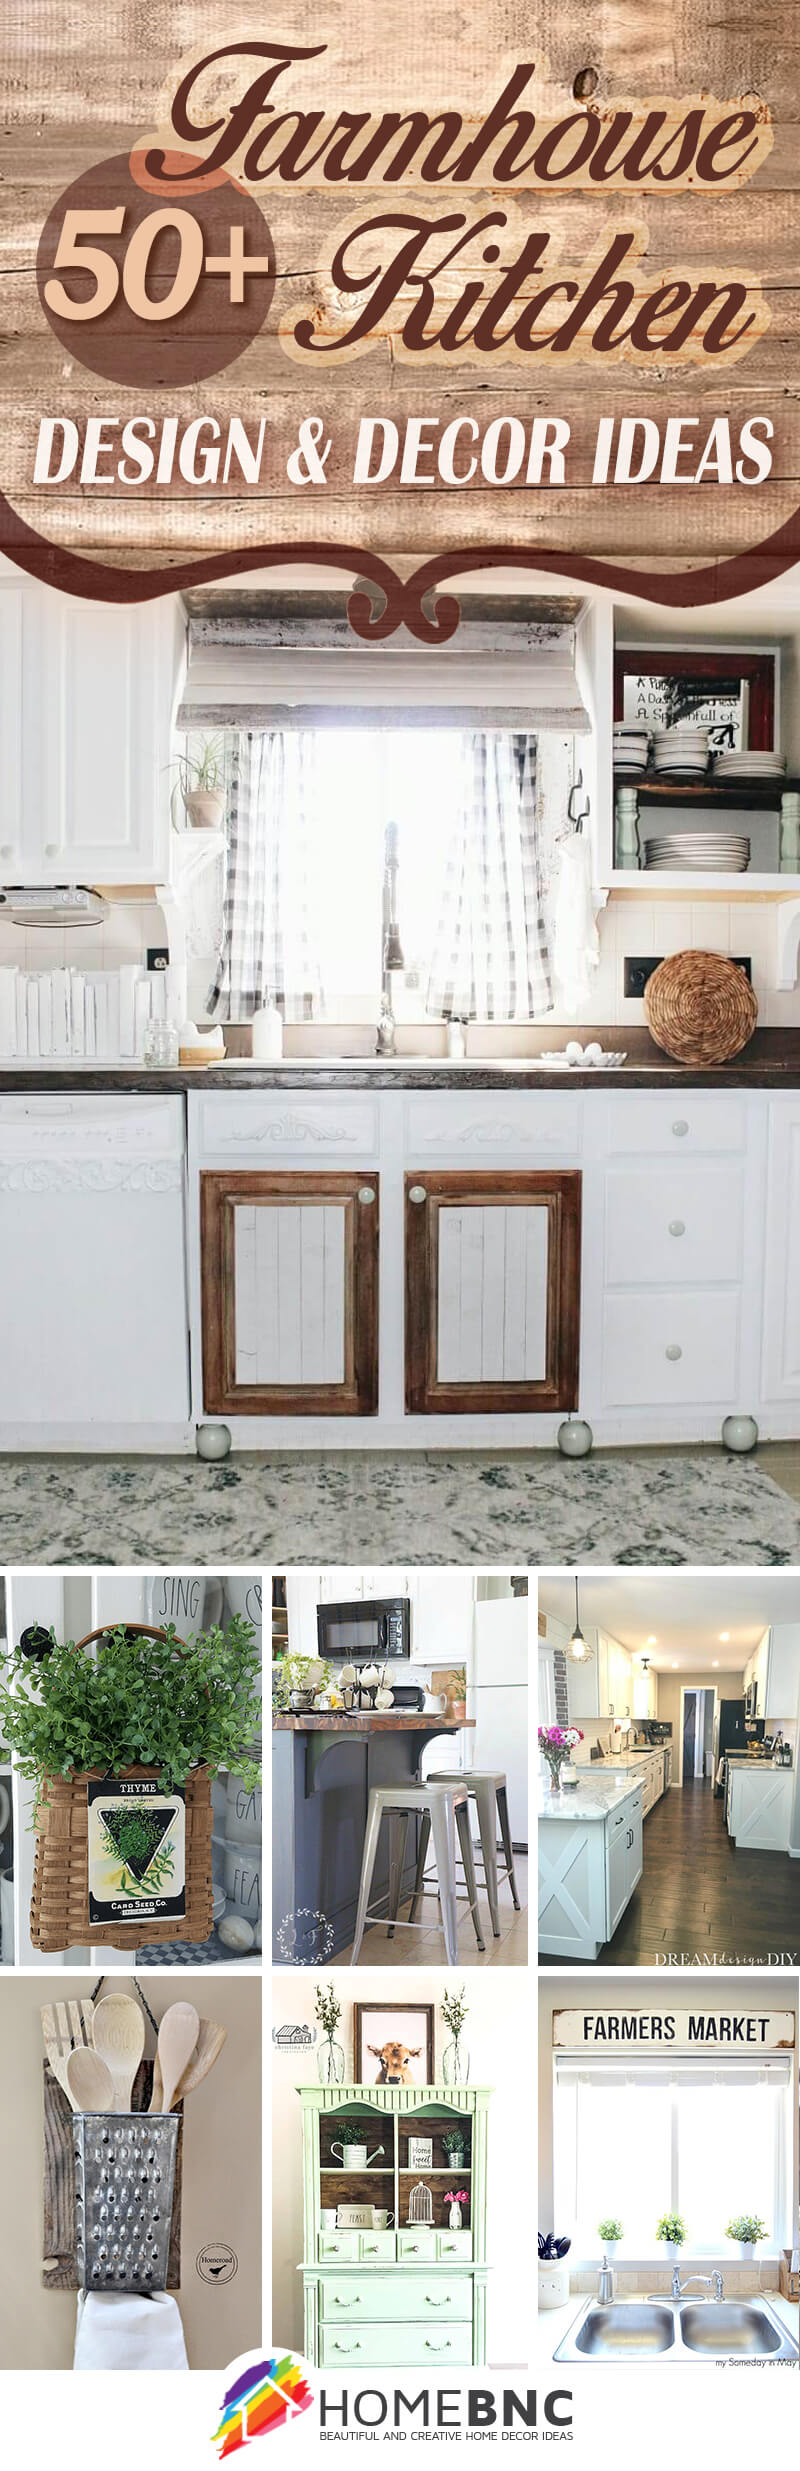 50 Best Farmhouse Kitchen Decor And Design Ideas For 2021